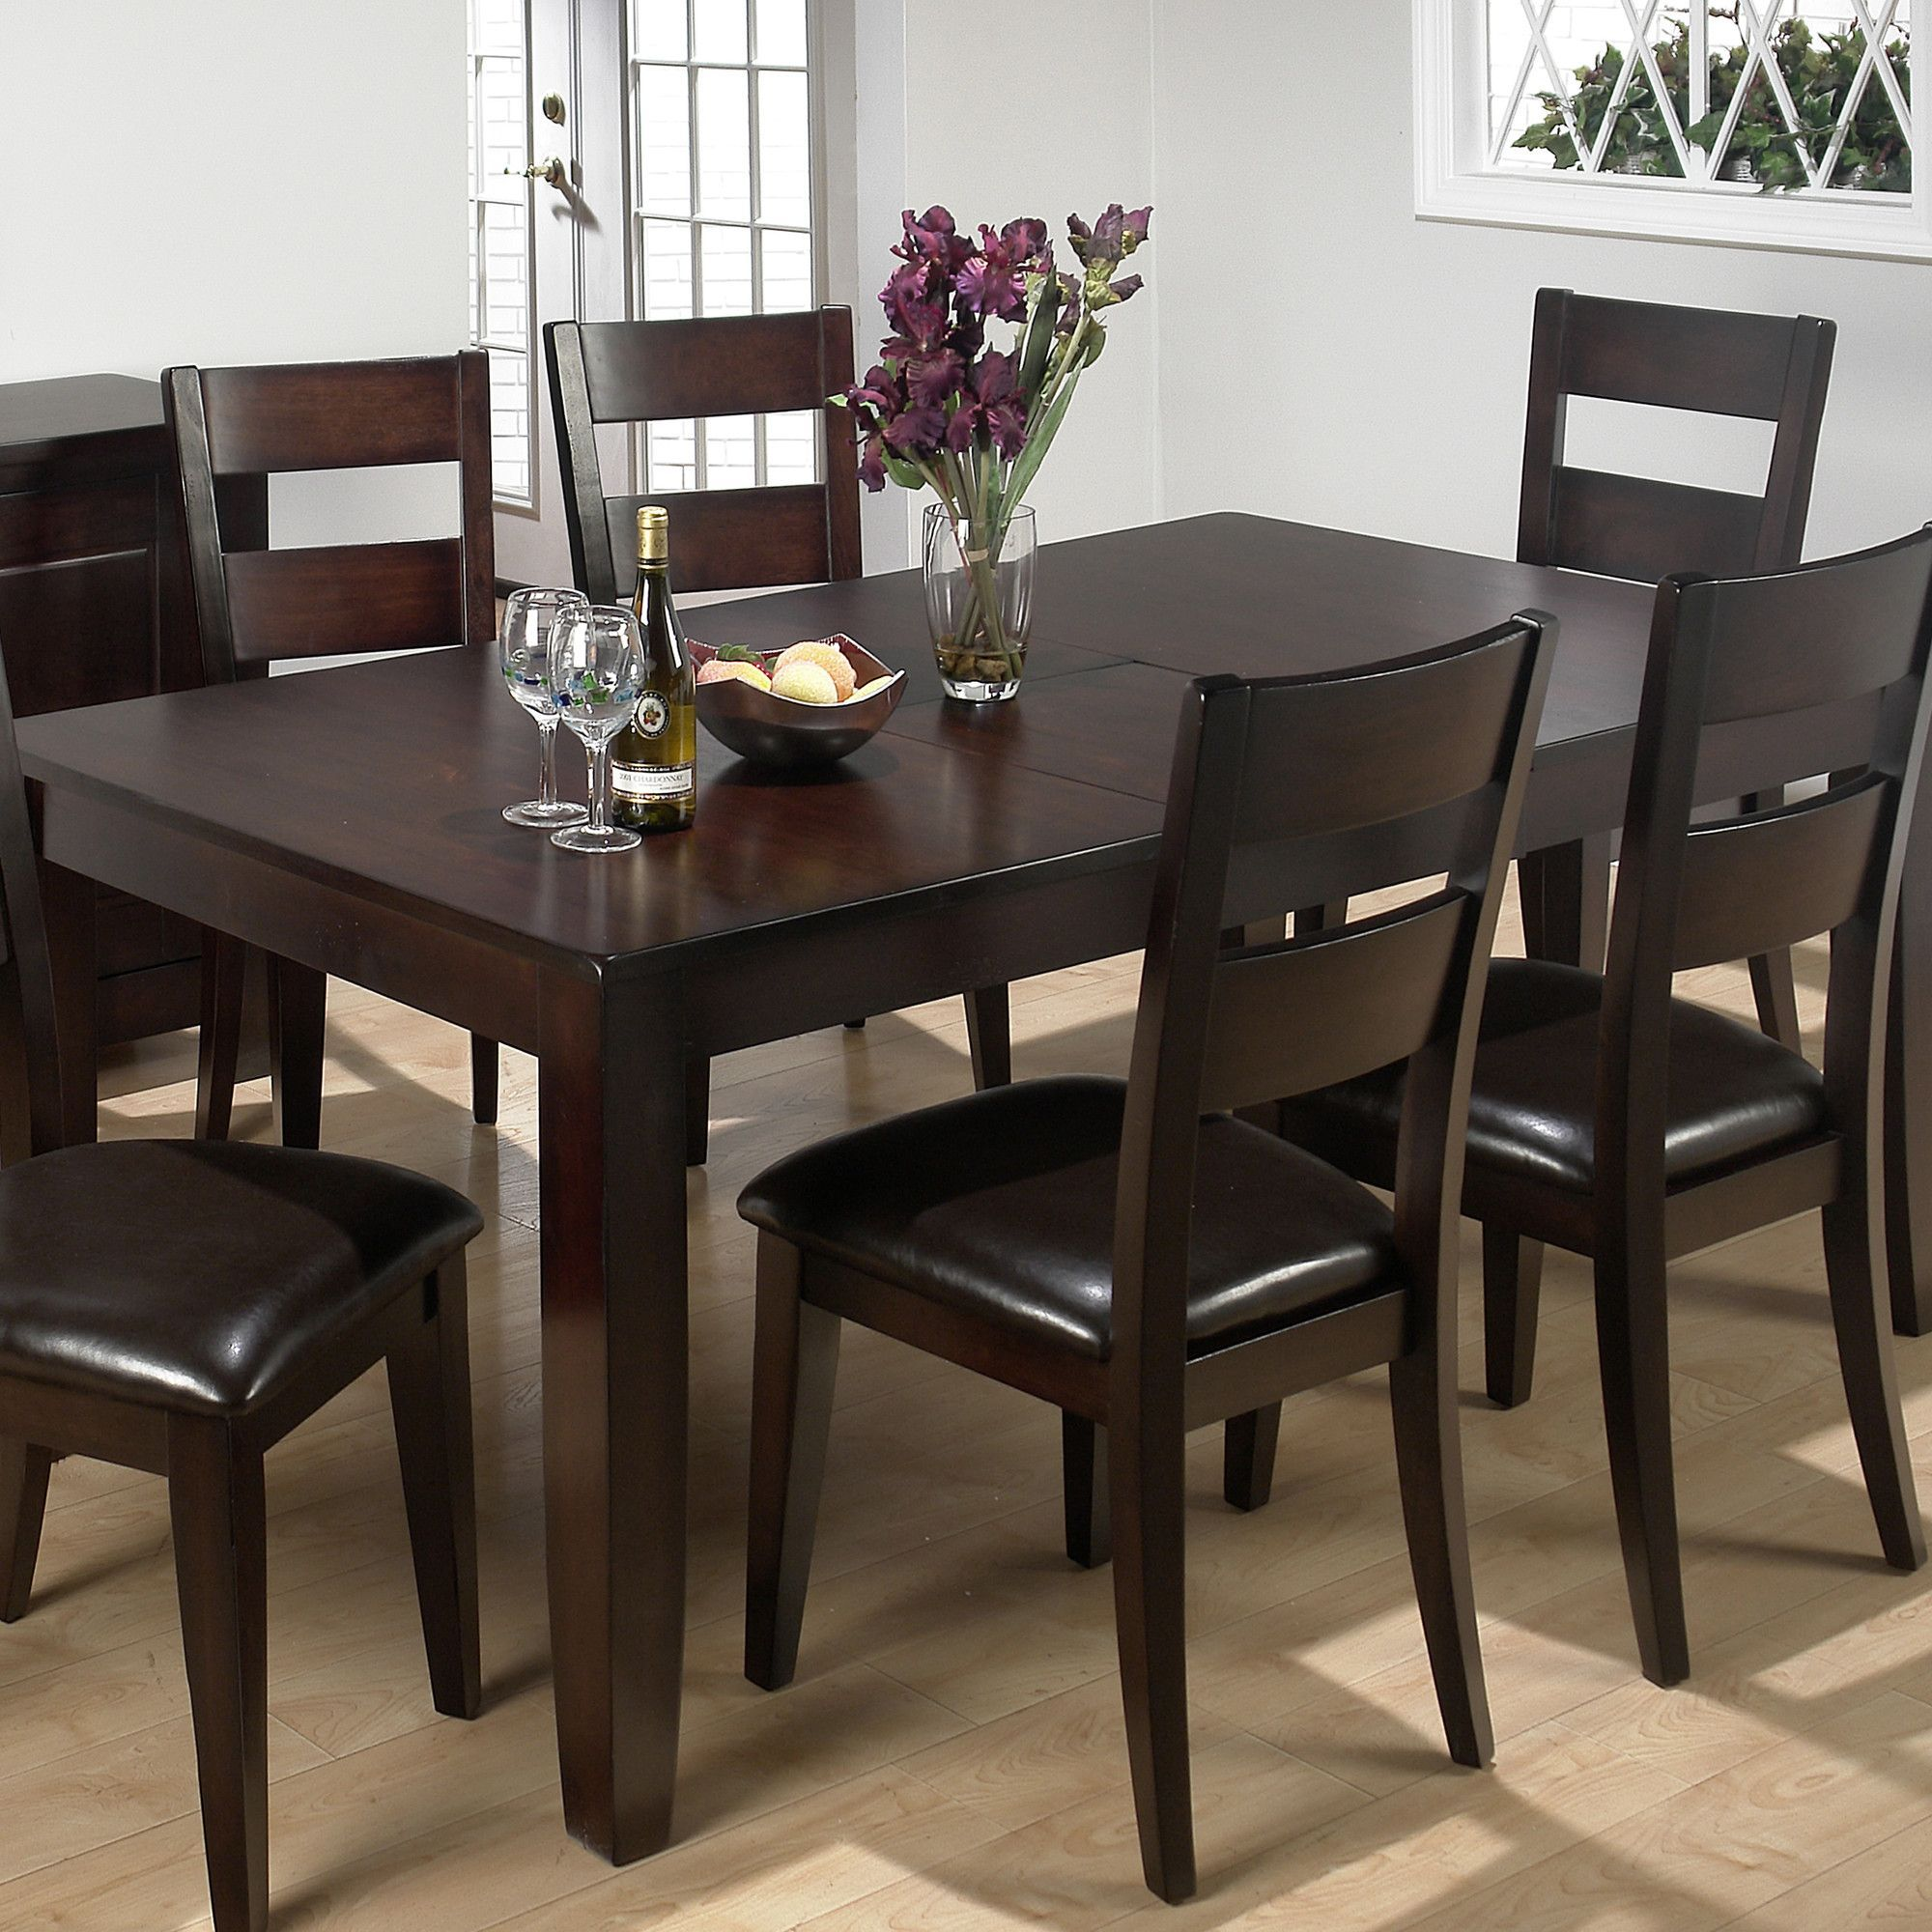 15 Small Dining Room Table Ideas Tips: Sisson Butterfly Leaf Dining Table